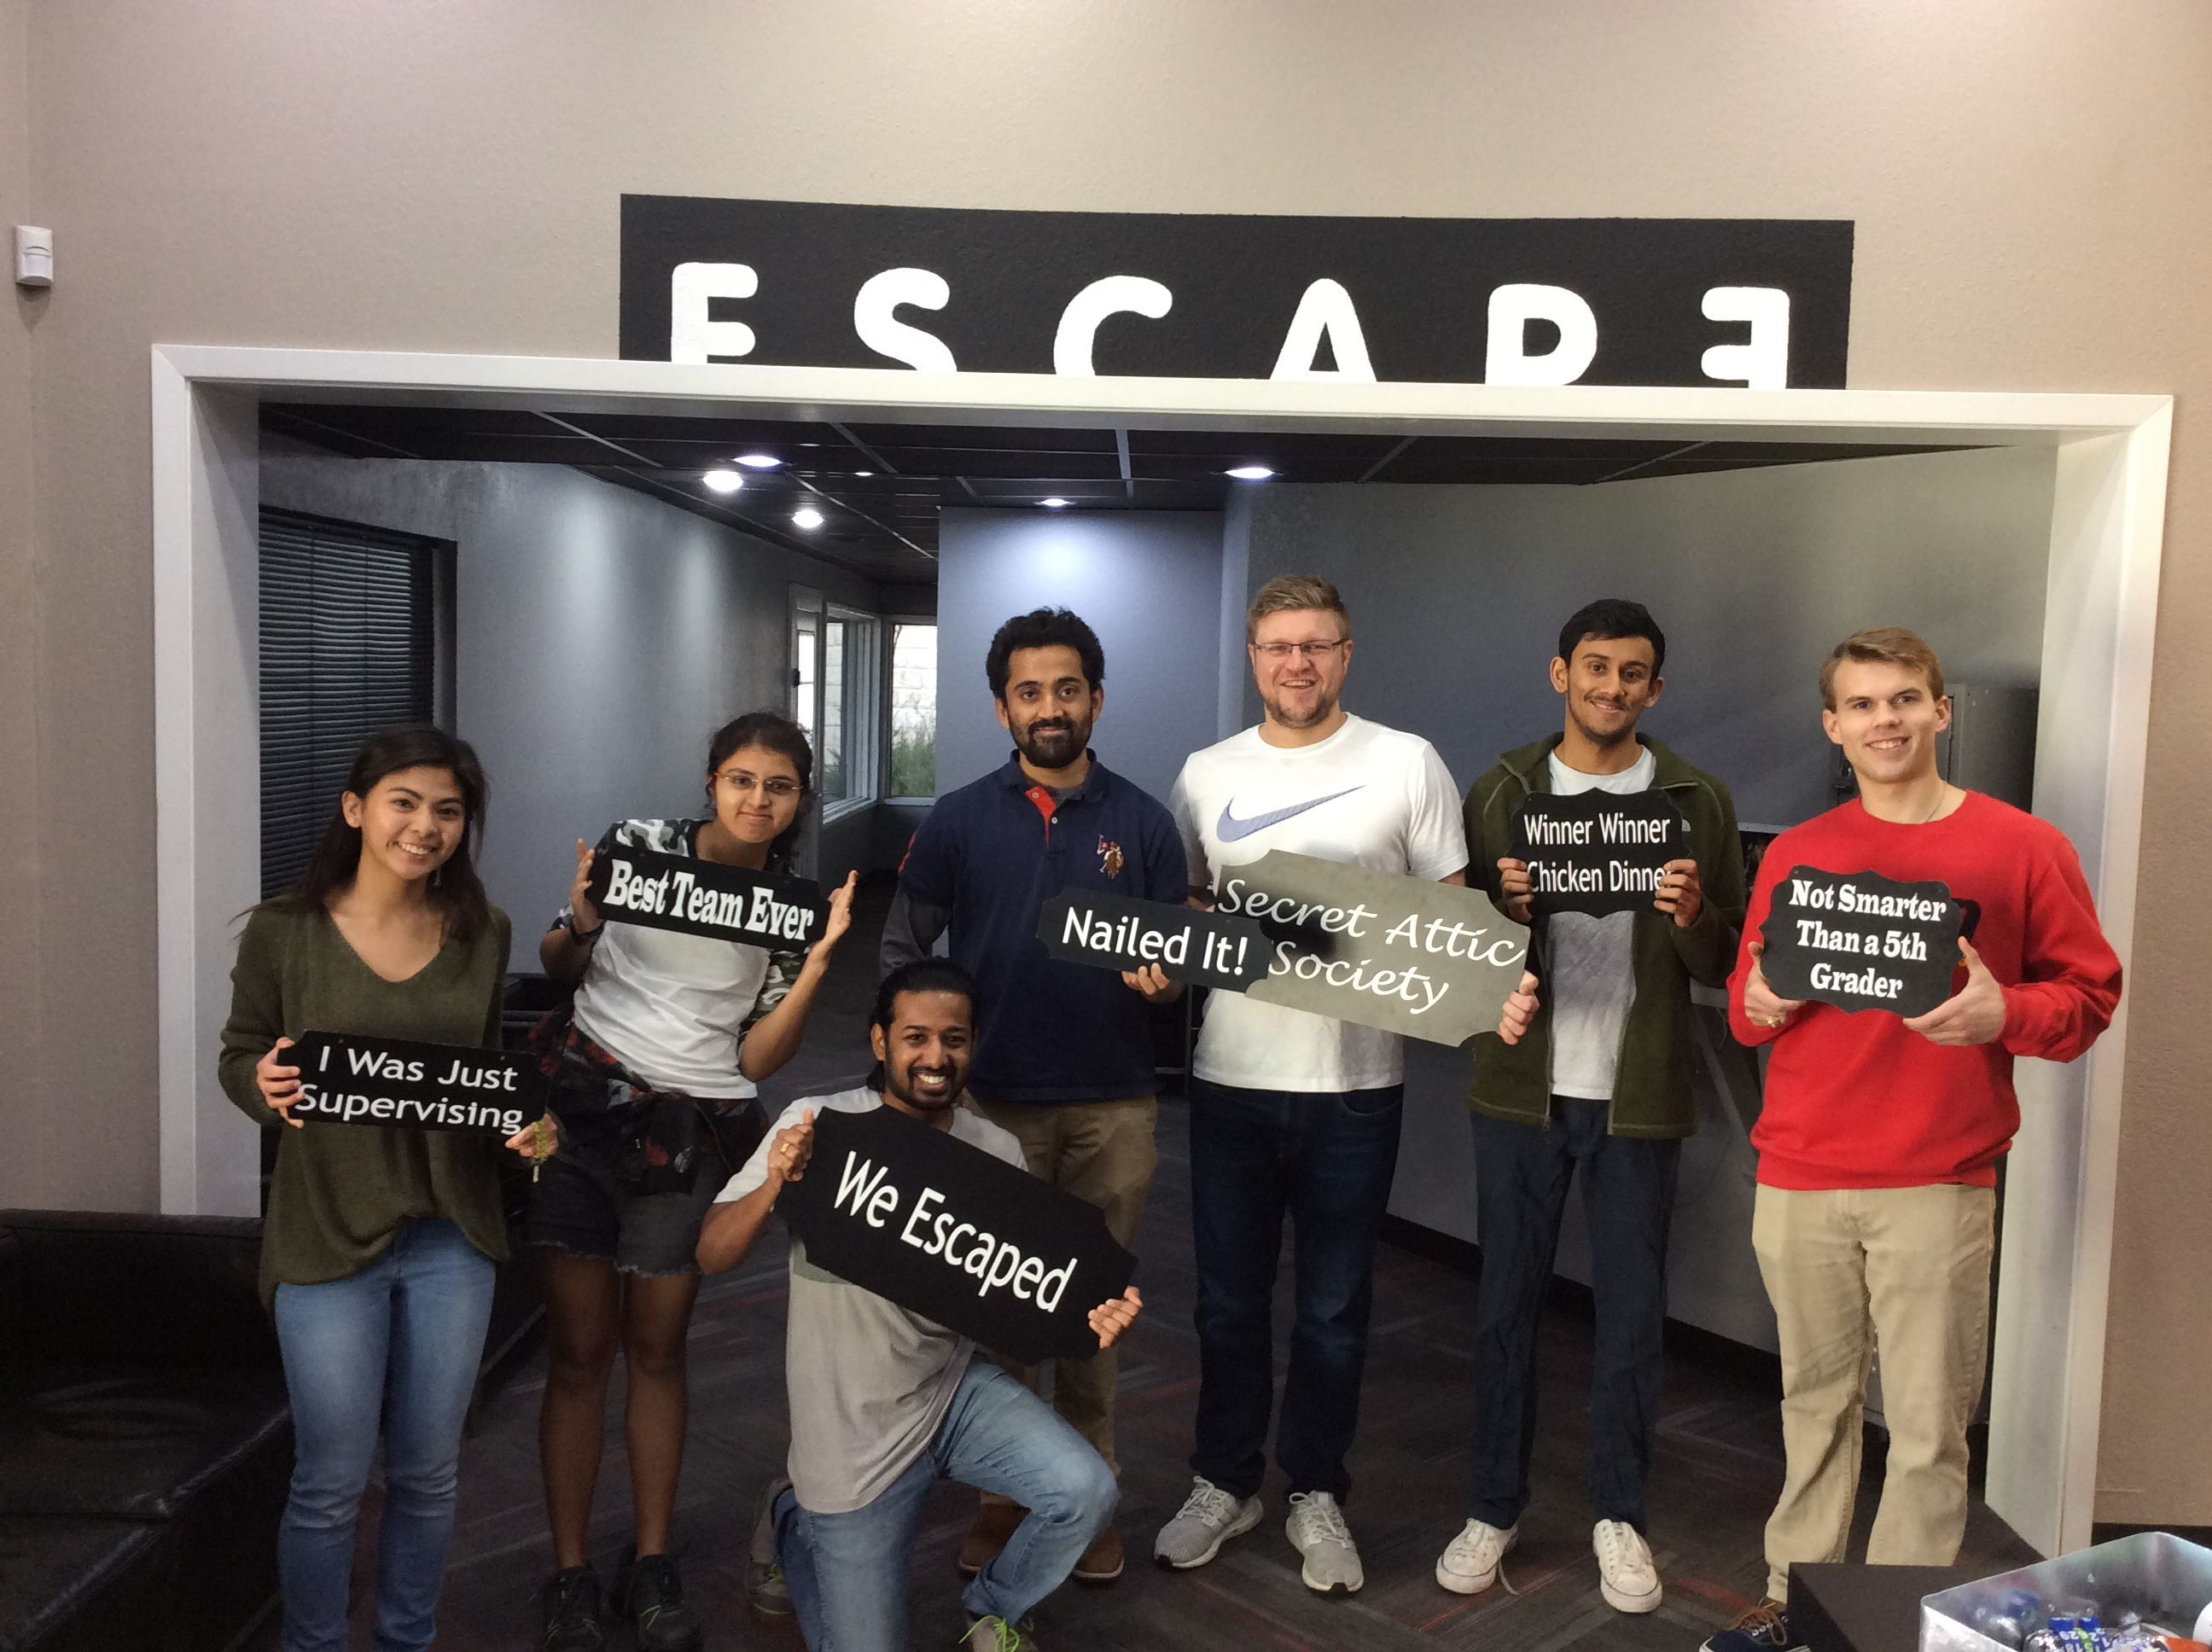 These Curious Puzzle Seekers Found Their Way Out Of The Secret Attic Society In 51 Minutes In 2020 Society The Secret Attic